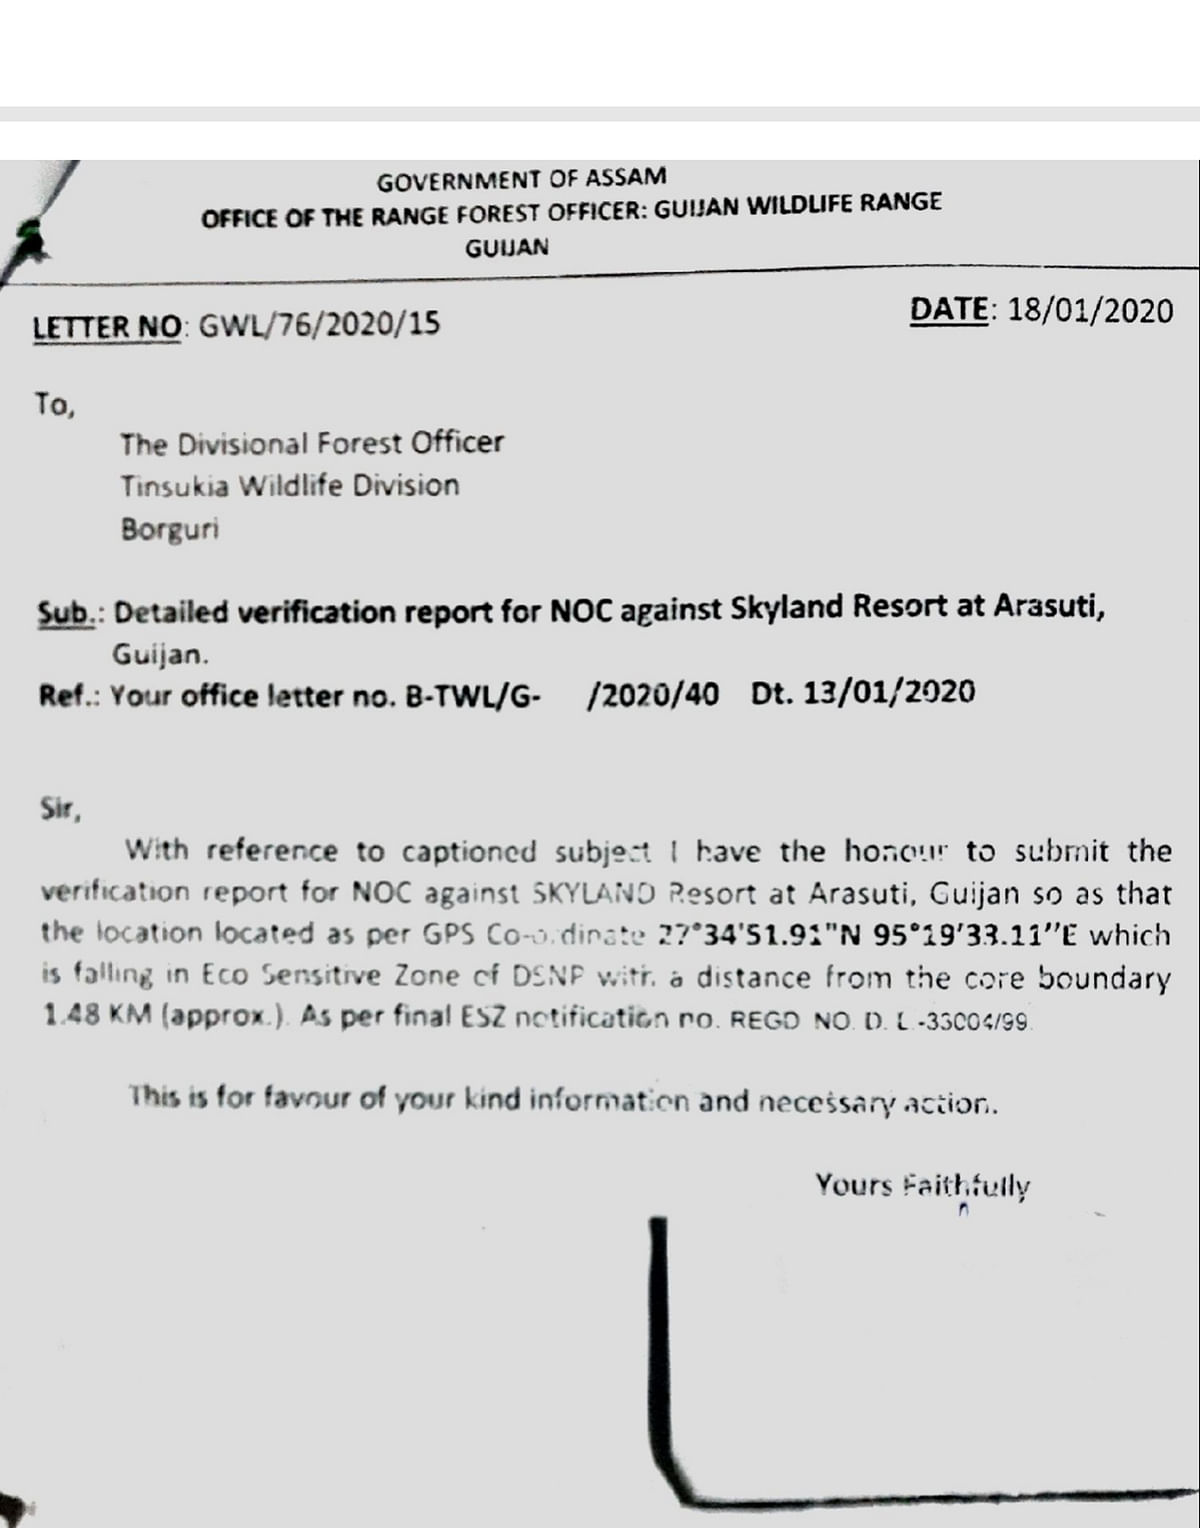 Copy of the report issued by the Guijan forest range officer